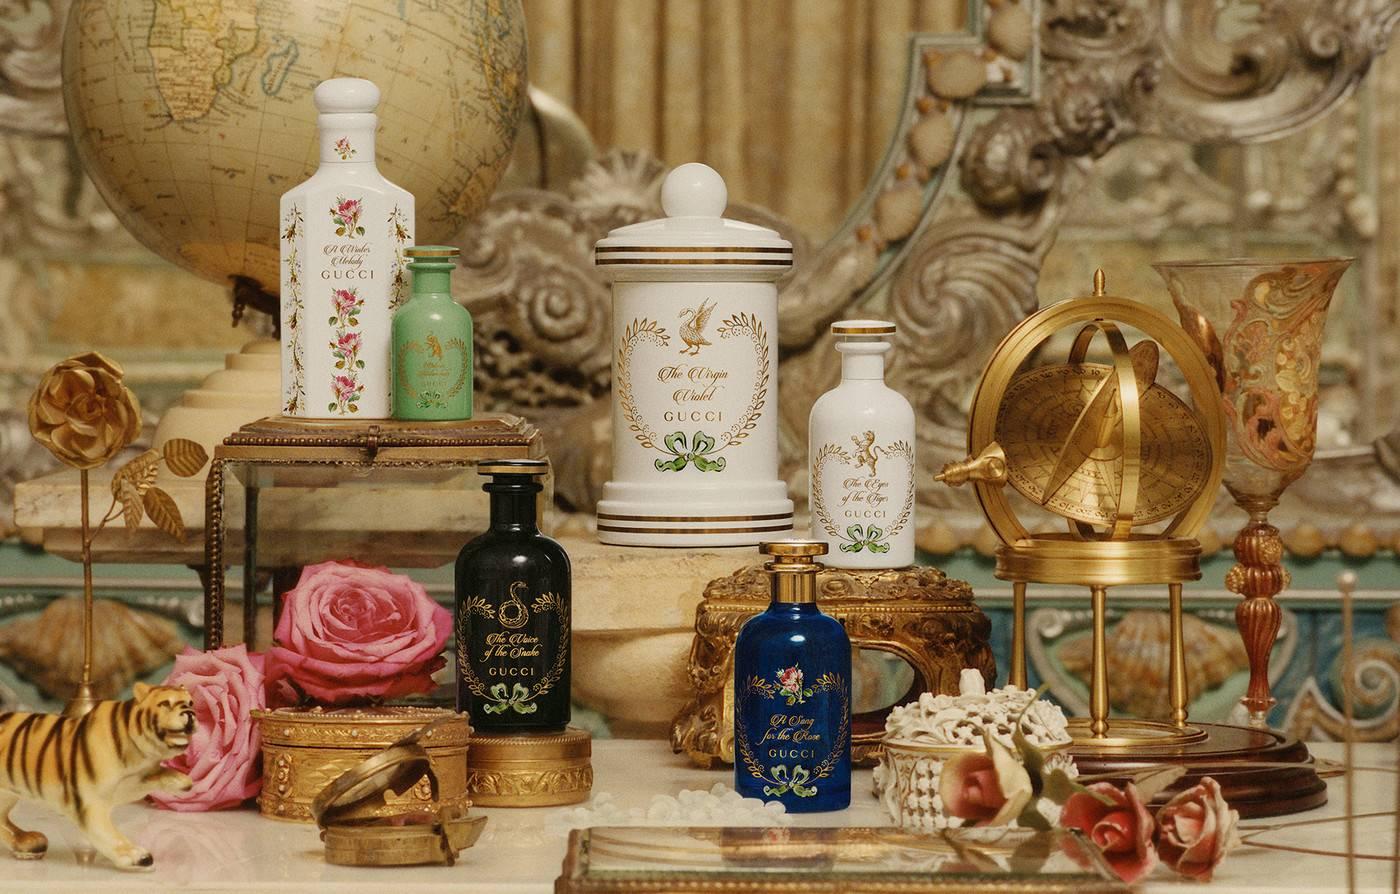 55afed494 Fragrance News Snippets - Gucci The Alchemist's Garden